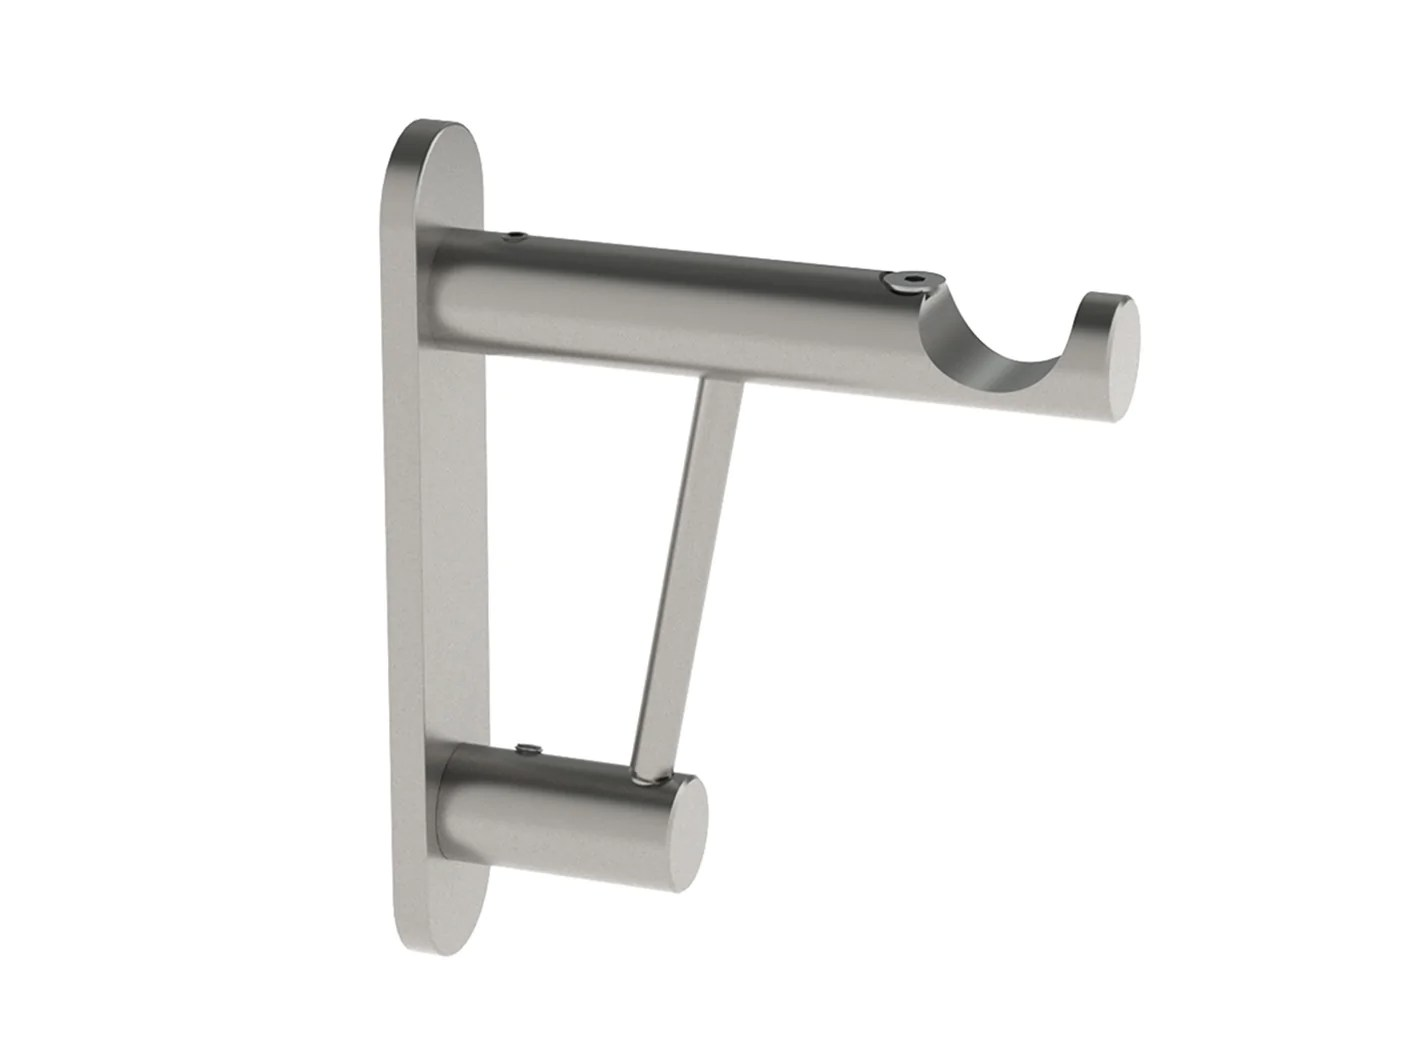 Strong Curtain Pole Bracket For Heavy Curtains 19mm Curtain Poles Walcot House